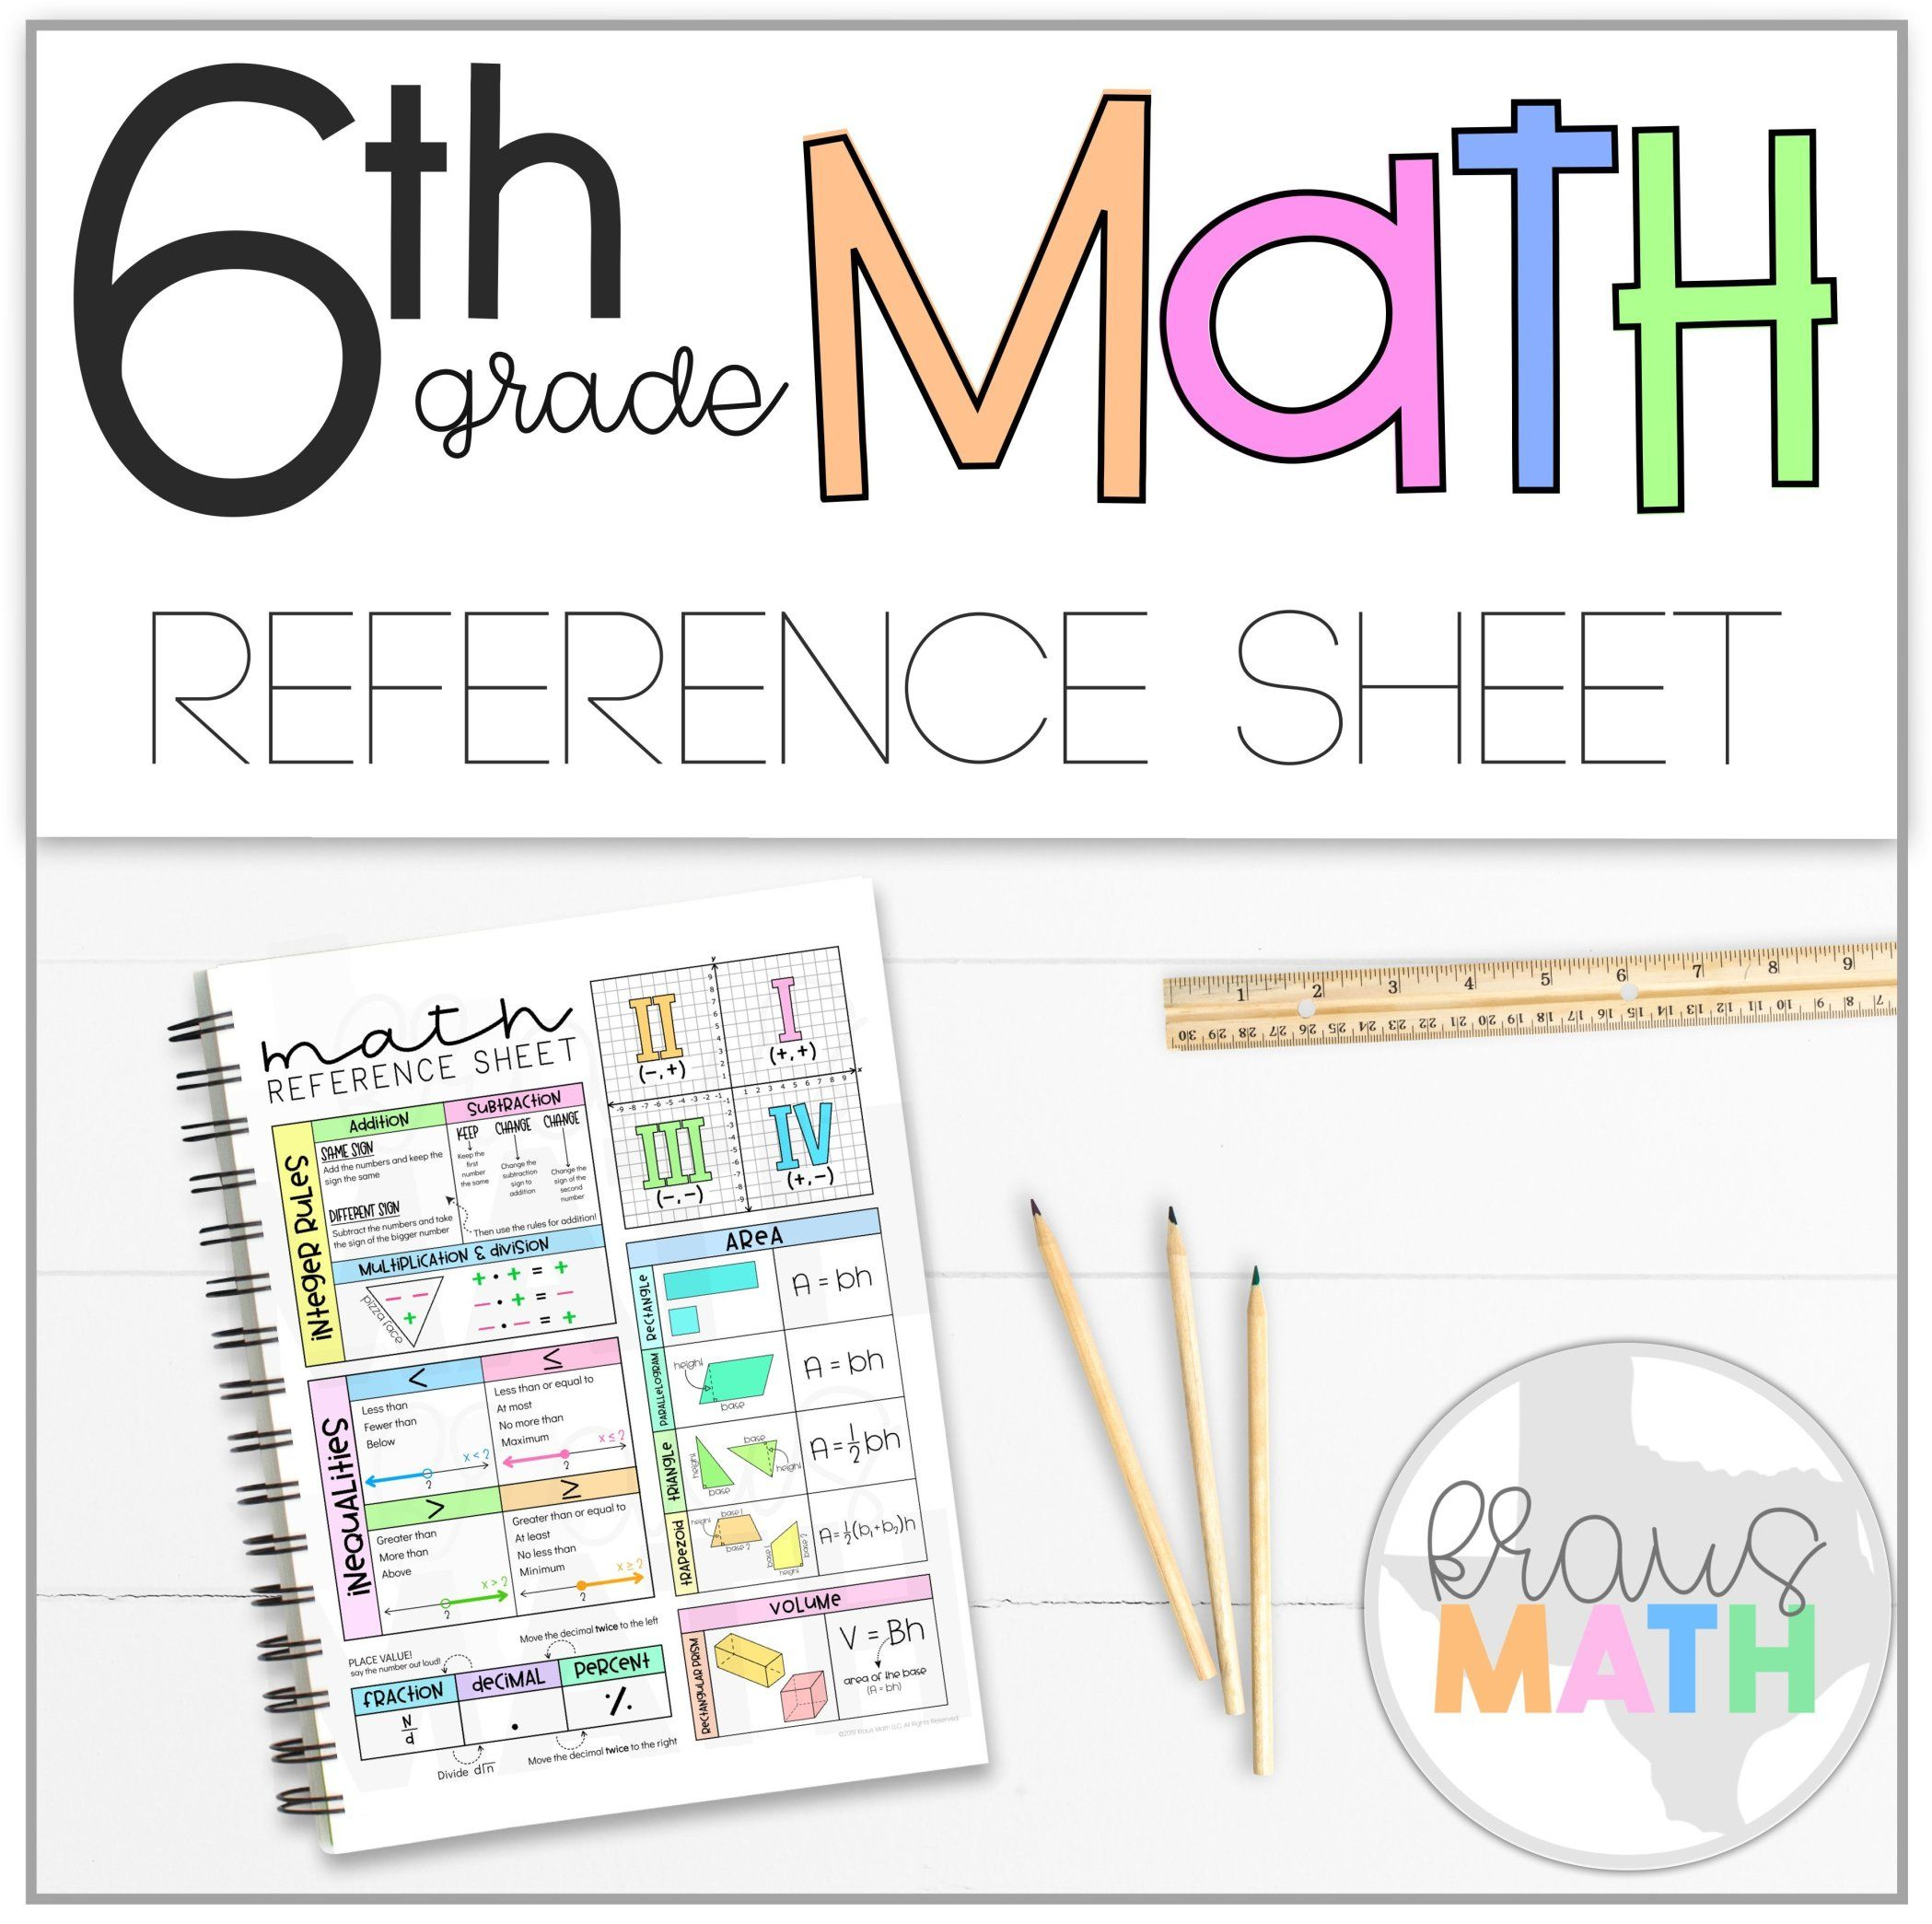 6th Grade Math Reference Sheet